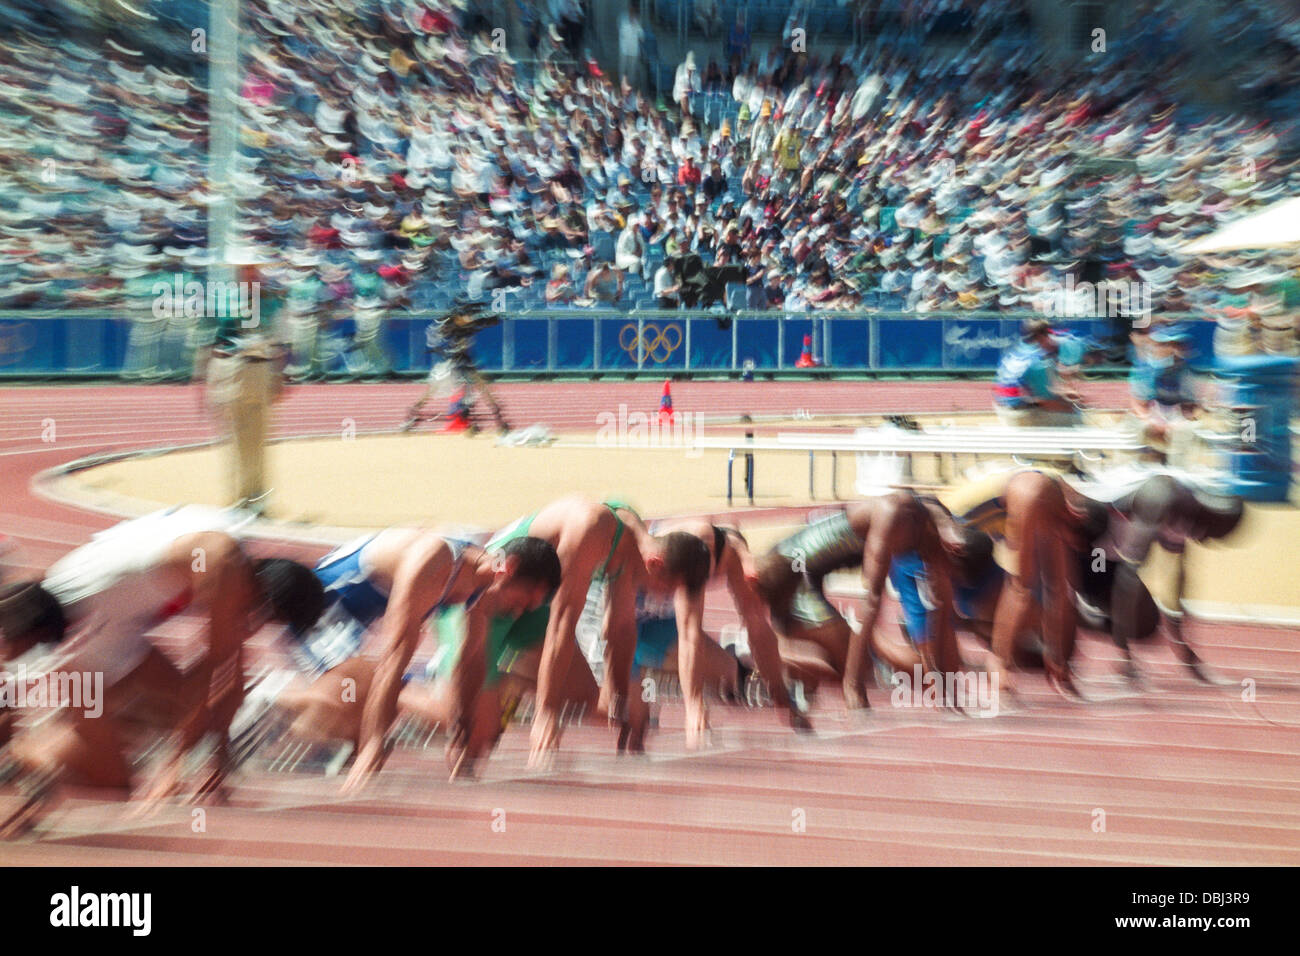 Blur motion image of the start of a 100 meter race at the 2000 Olympic Summer Games. - Stock Image